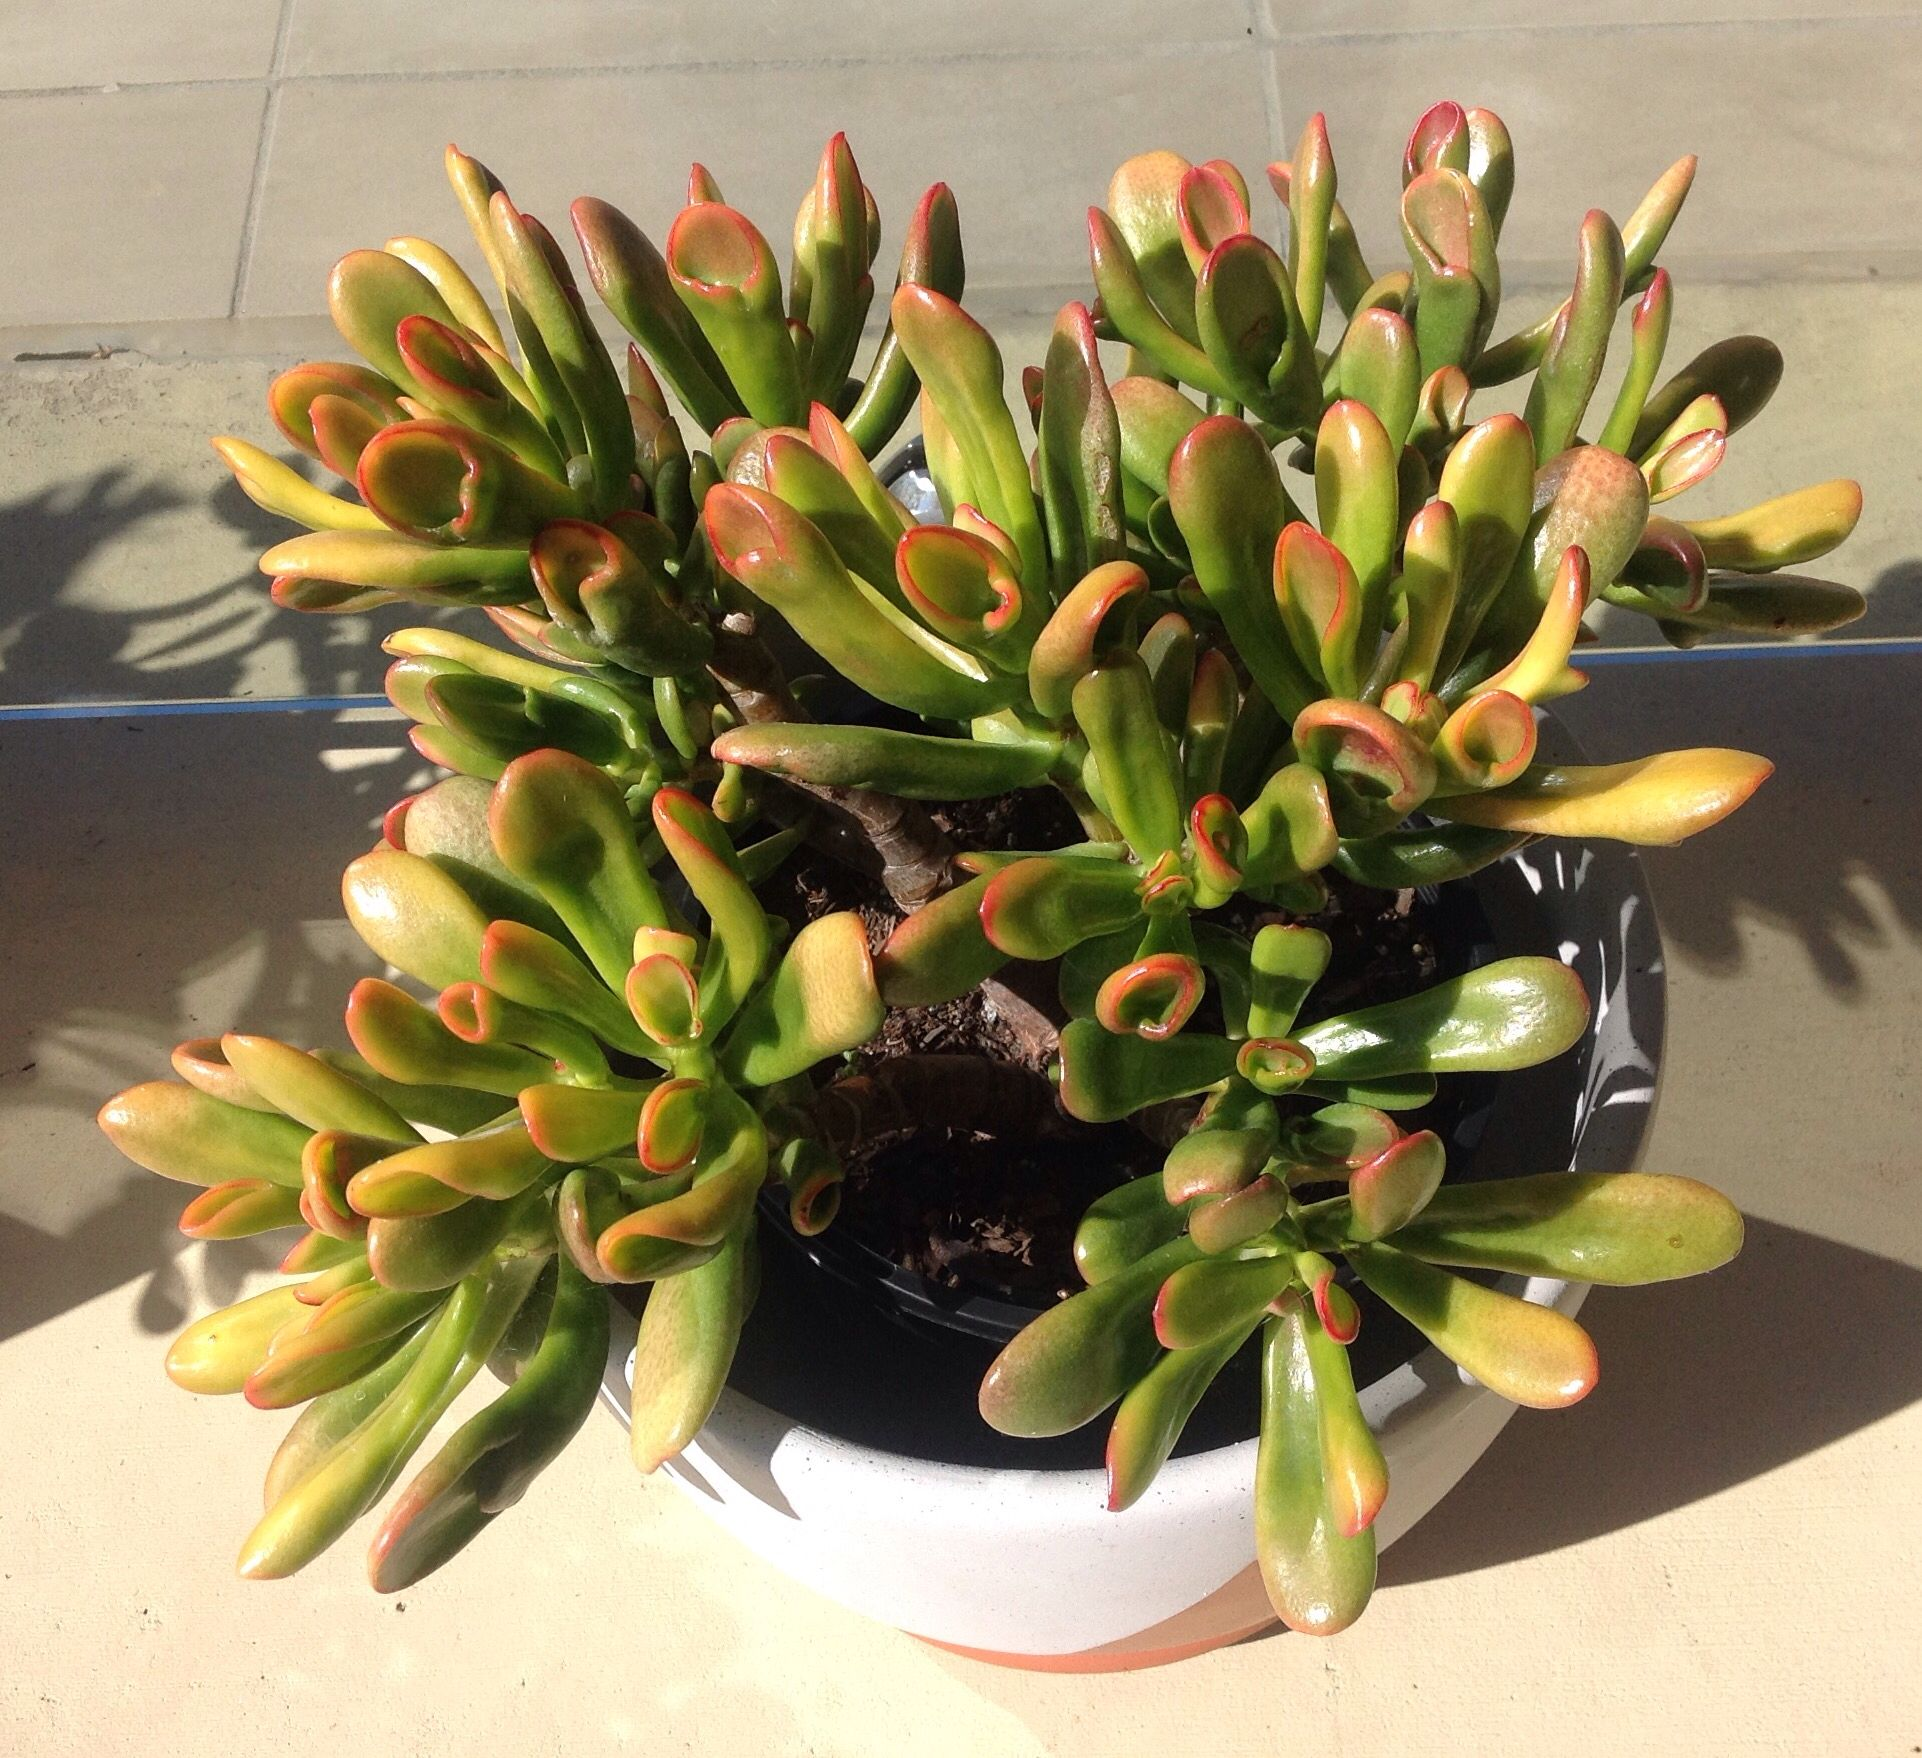 Crassula ovata hobbit or crassula ovata gollum sunset - Piante portafortuna ...